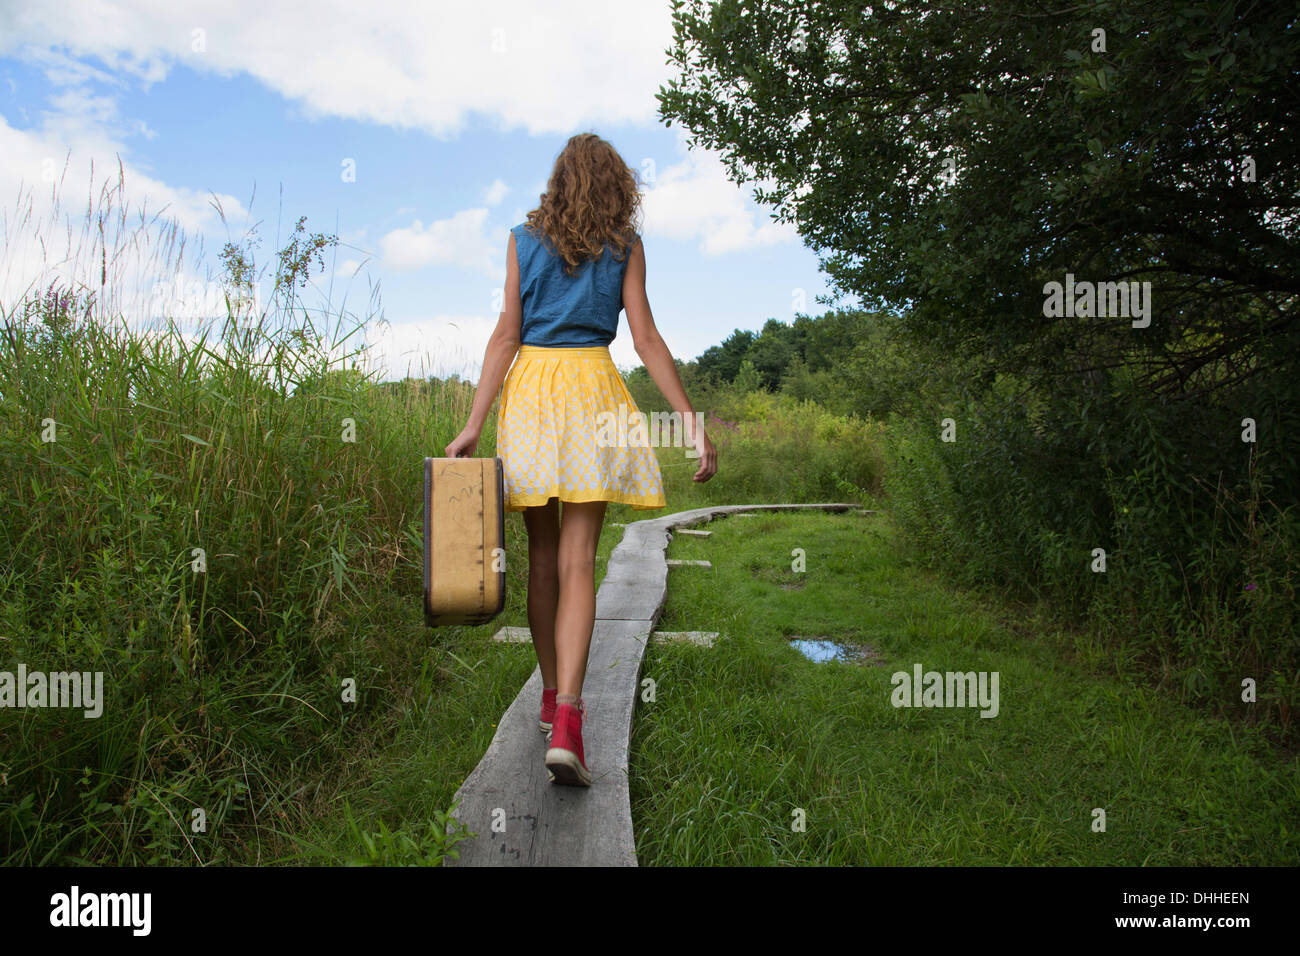 Teenage girl carrying suitcase on rural path - Stock Image